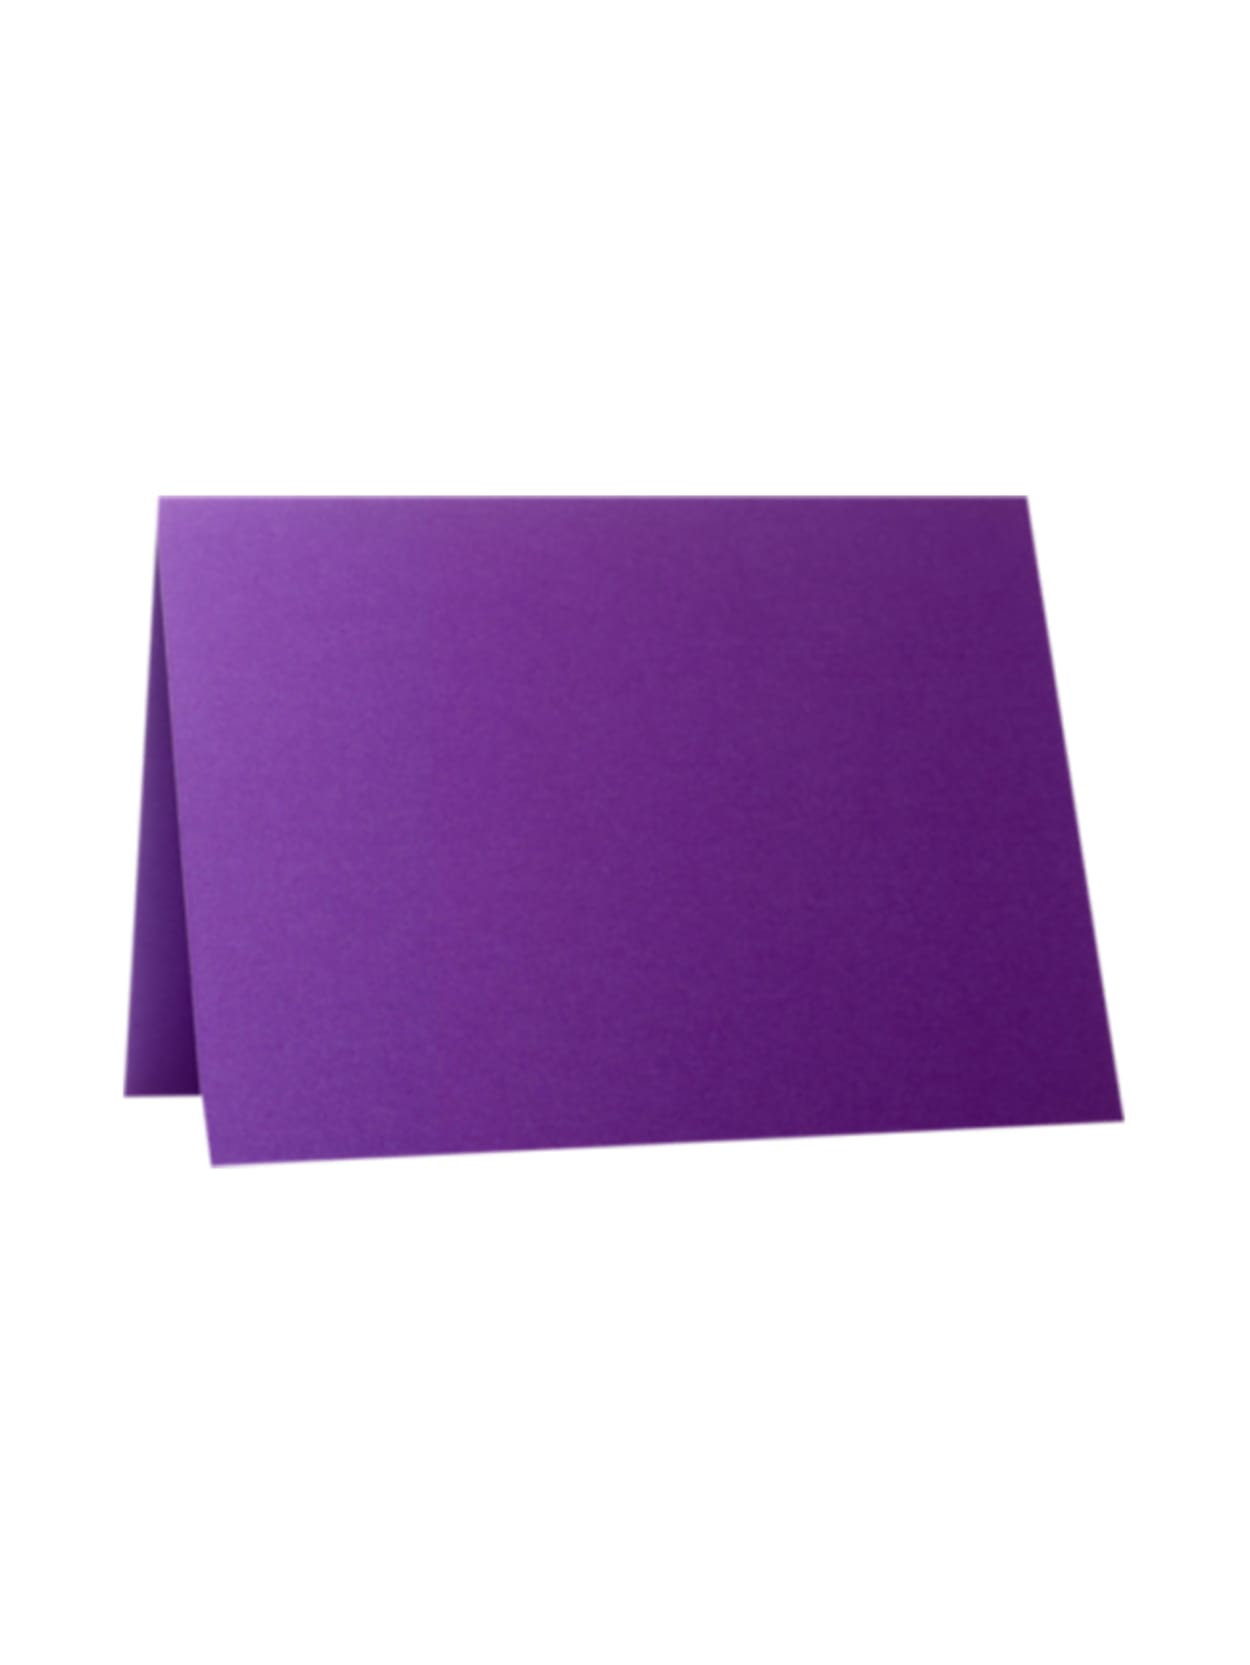 3 1//2 x 4 7//8 Pack of 250 A1 Folded Card